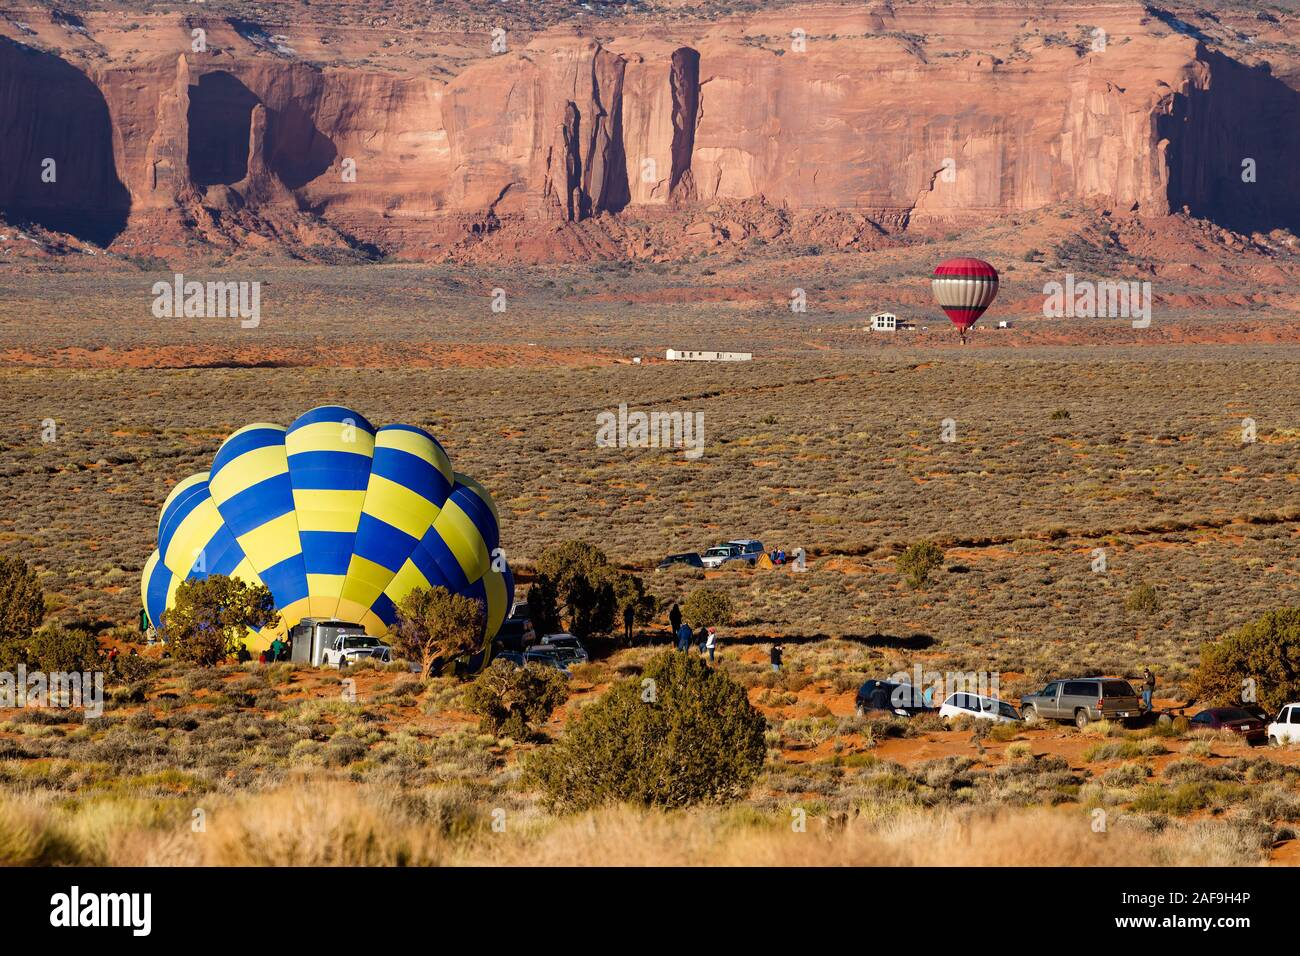 A team inflates a hot balloon in preparation for launch in the Monument Valley Navajo Tribal Park in Arizona.  Another balloon is takinf off in the ba Stock Photo